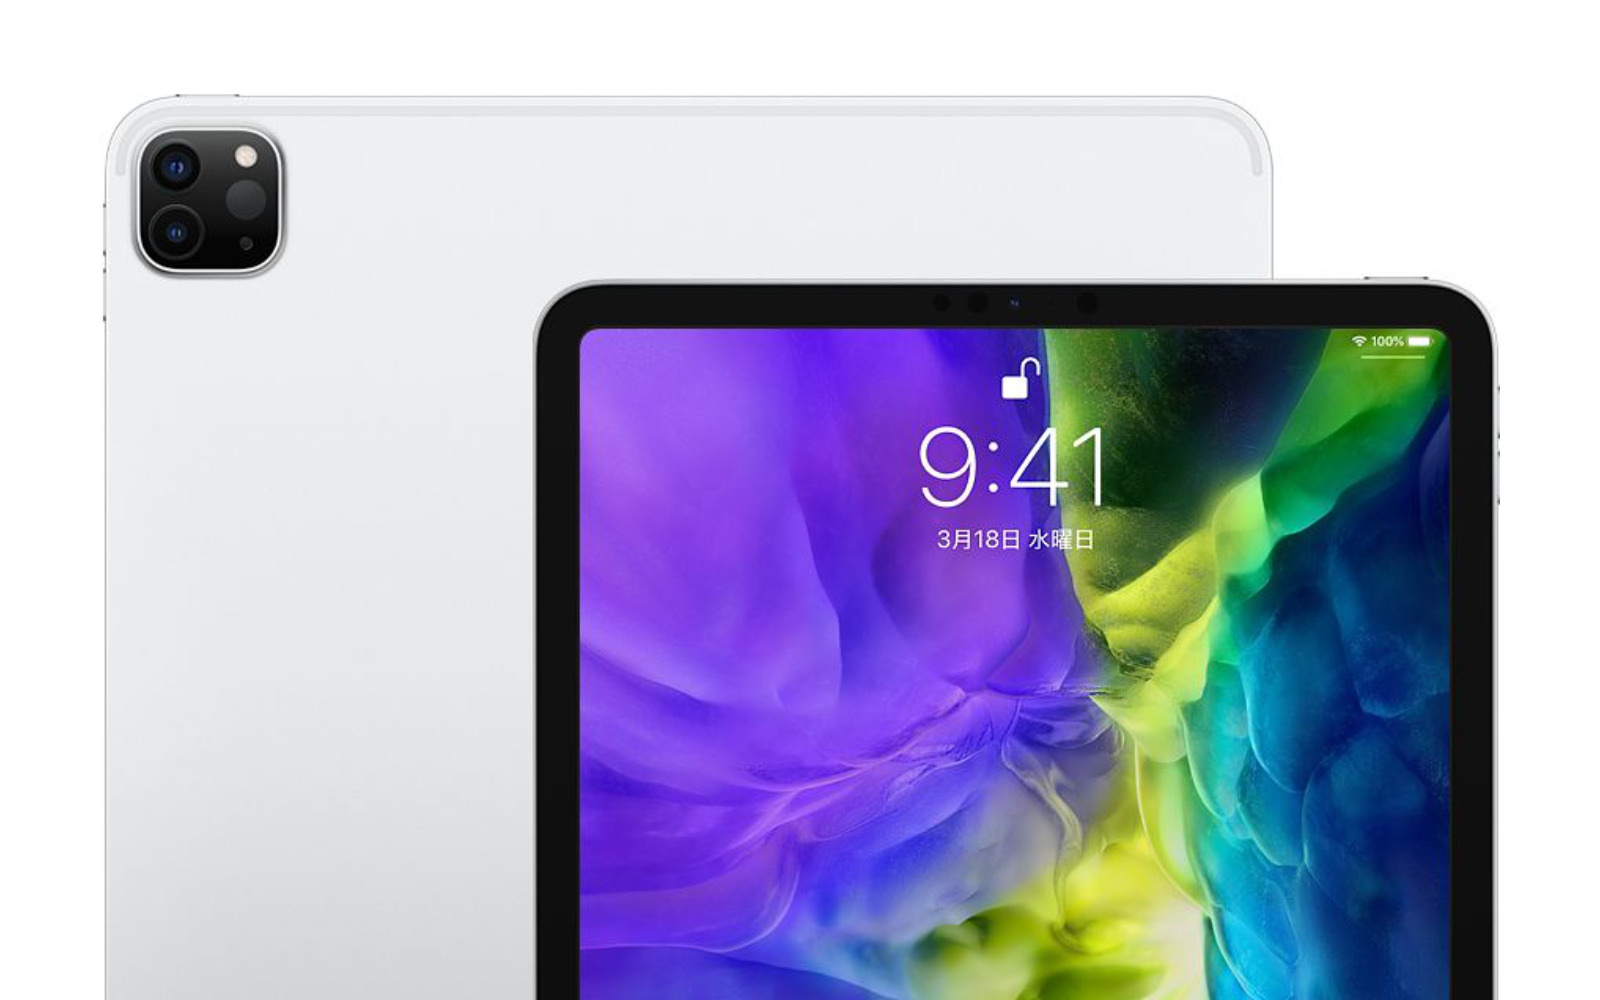 Ipad pro 2020 back and front